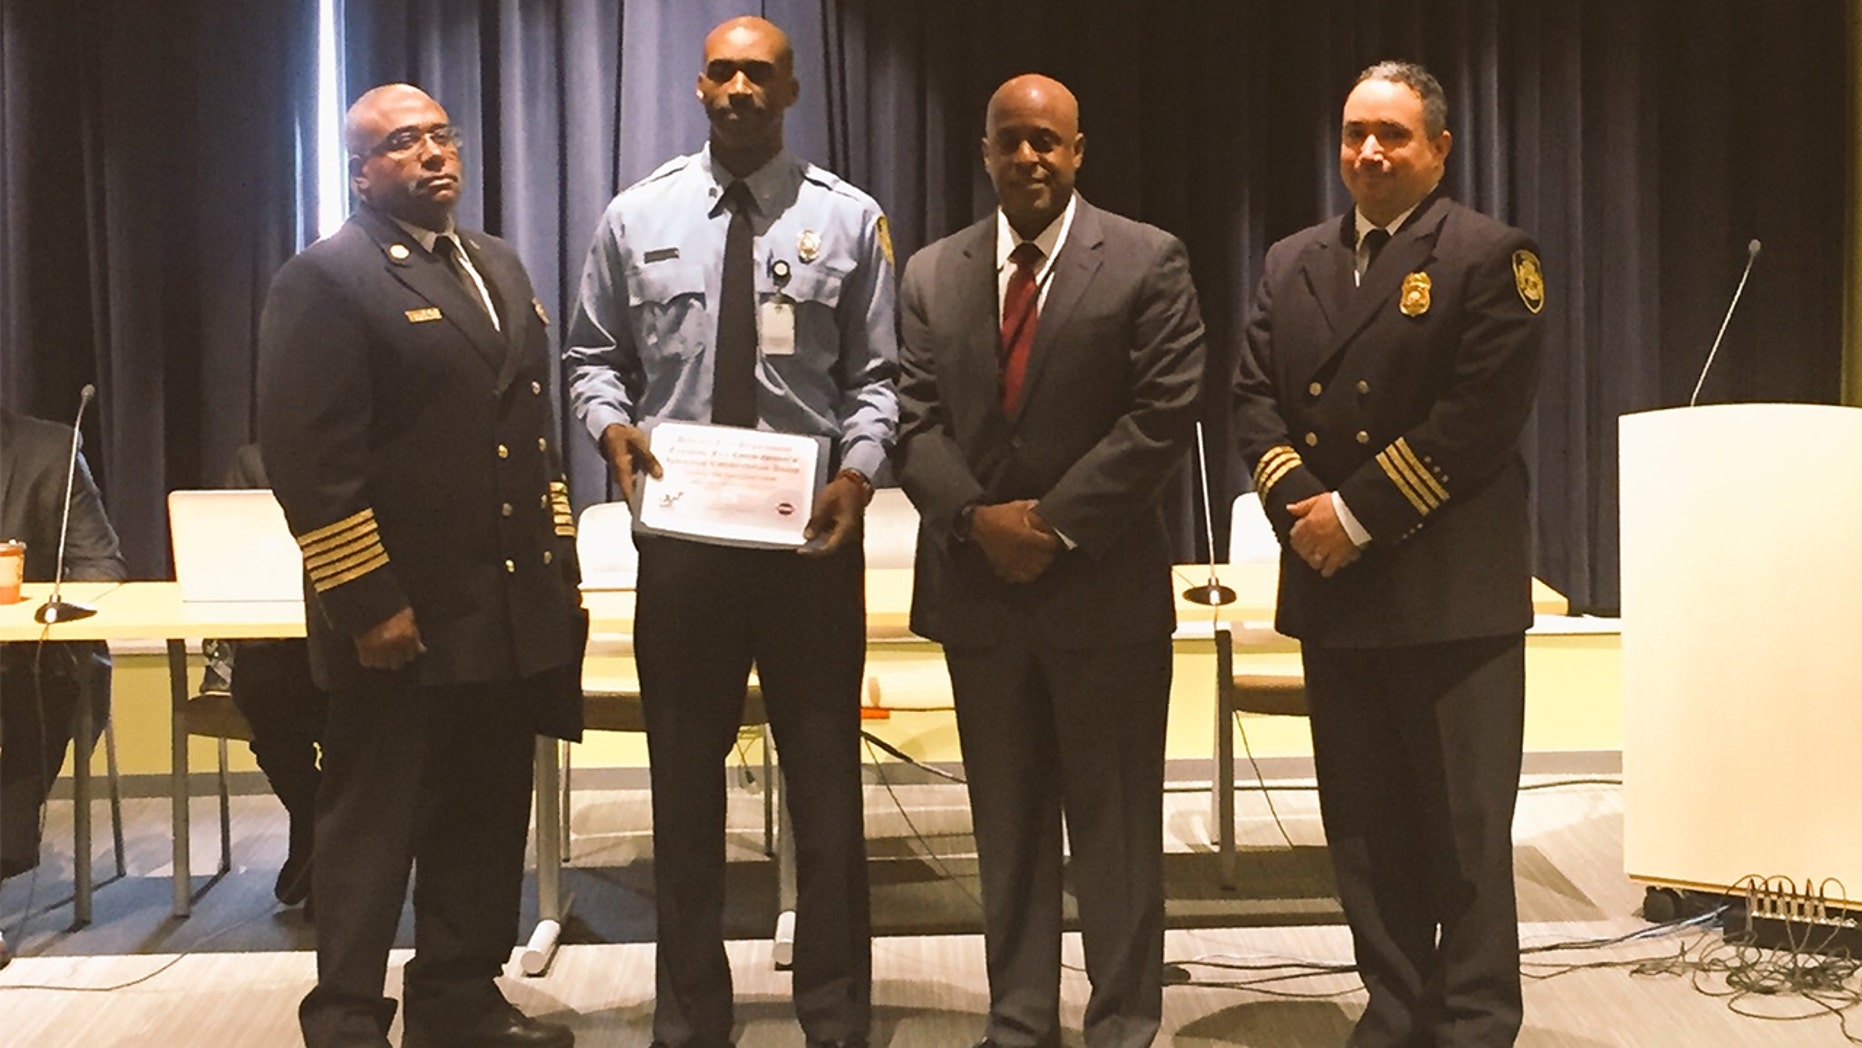 Detroit Firefighter Sivad Johnson holds plaque given to him in 2016 for saving the life of an unconscious man.